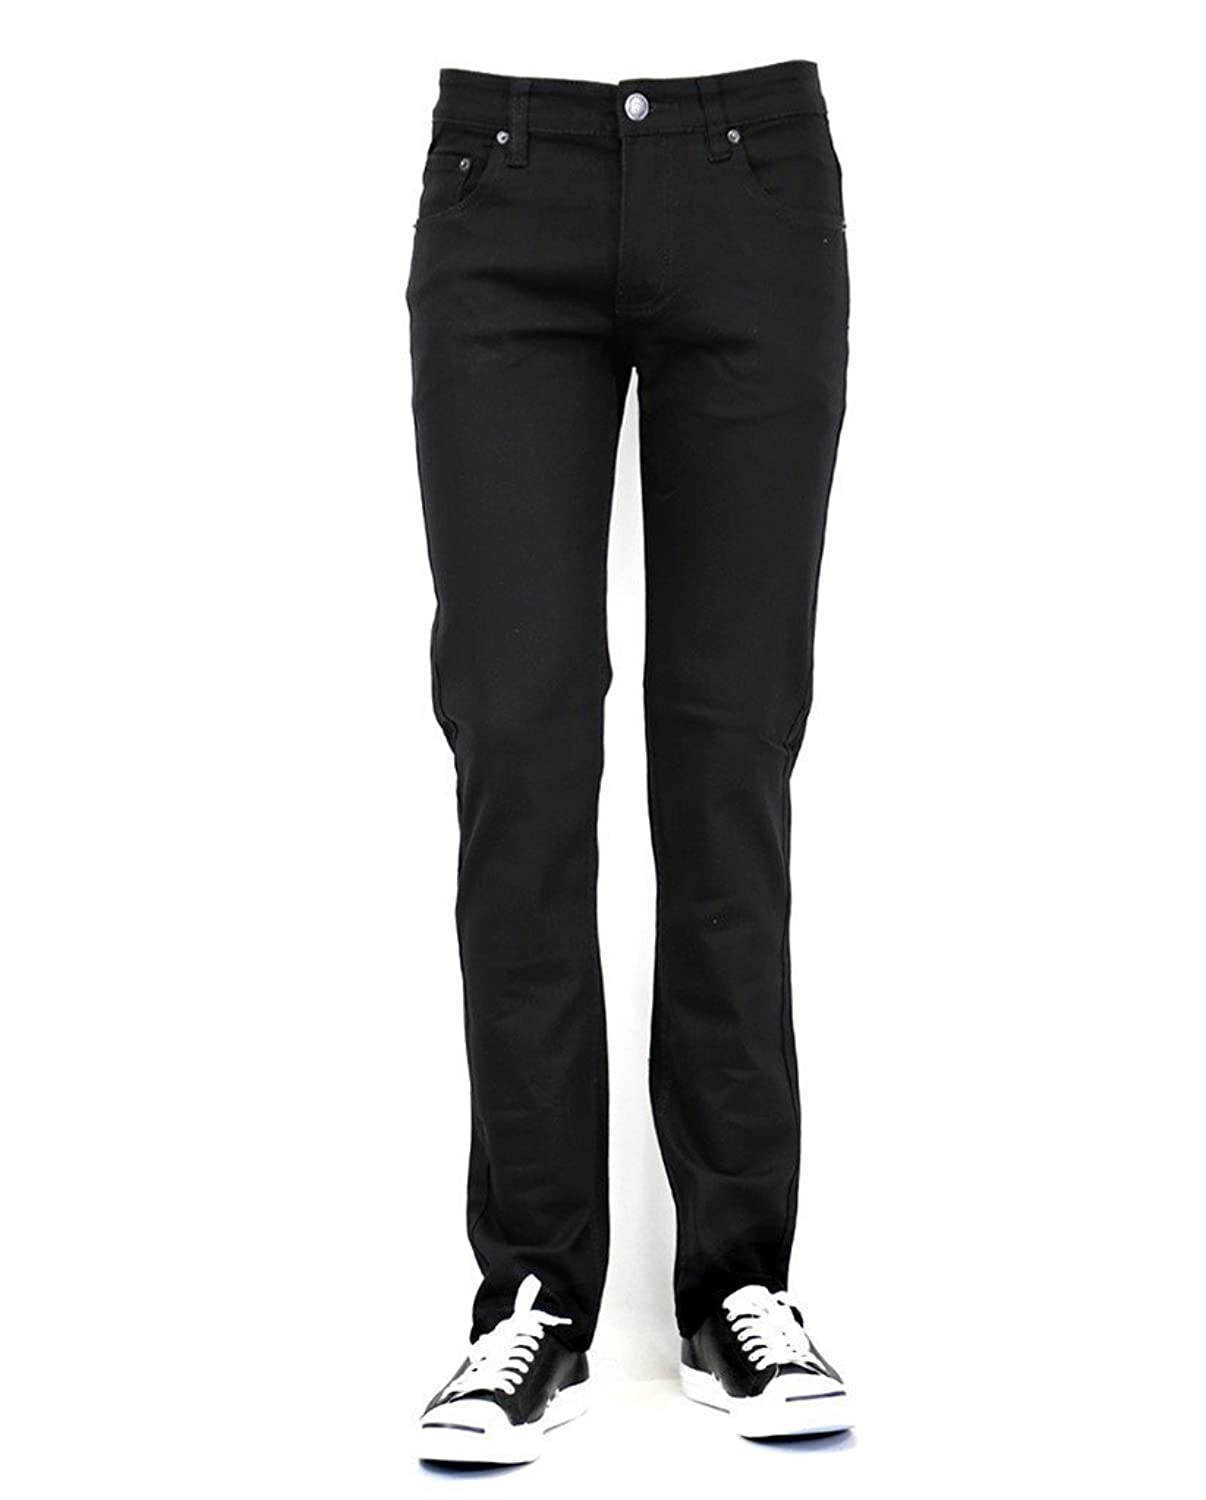 TNM Men's Super Skinny Jeans at Amazon Men's Clothing store: